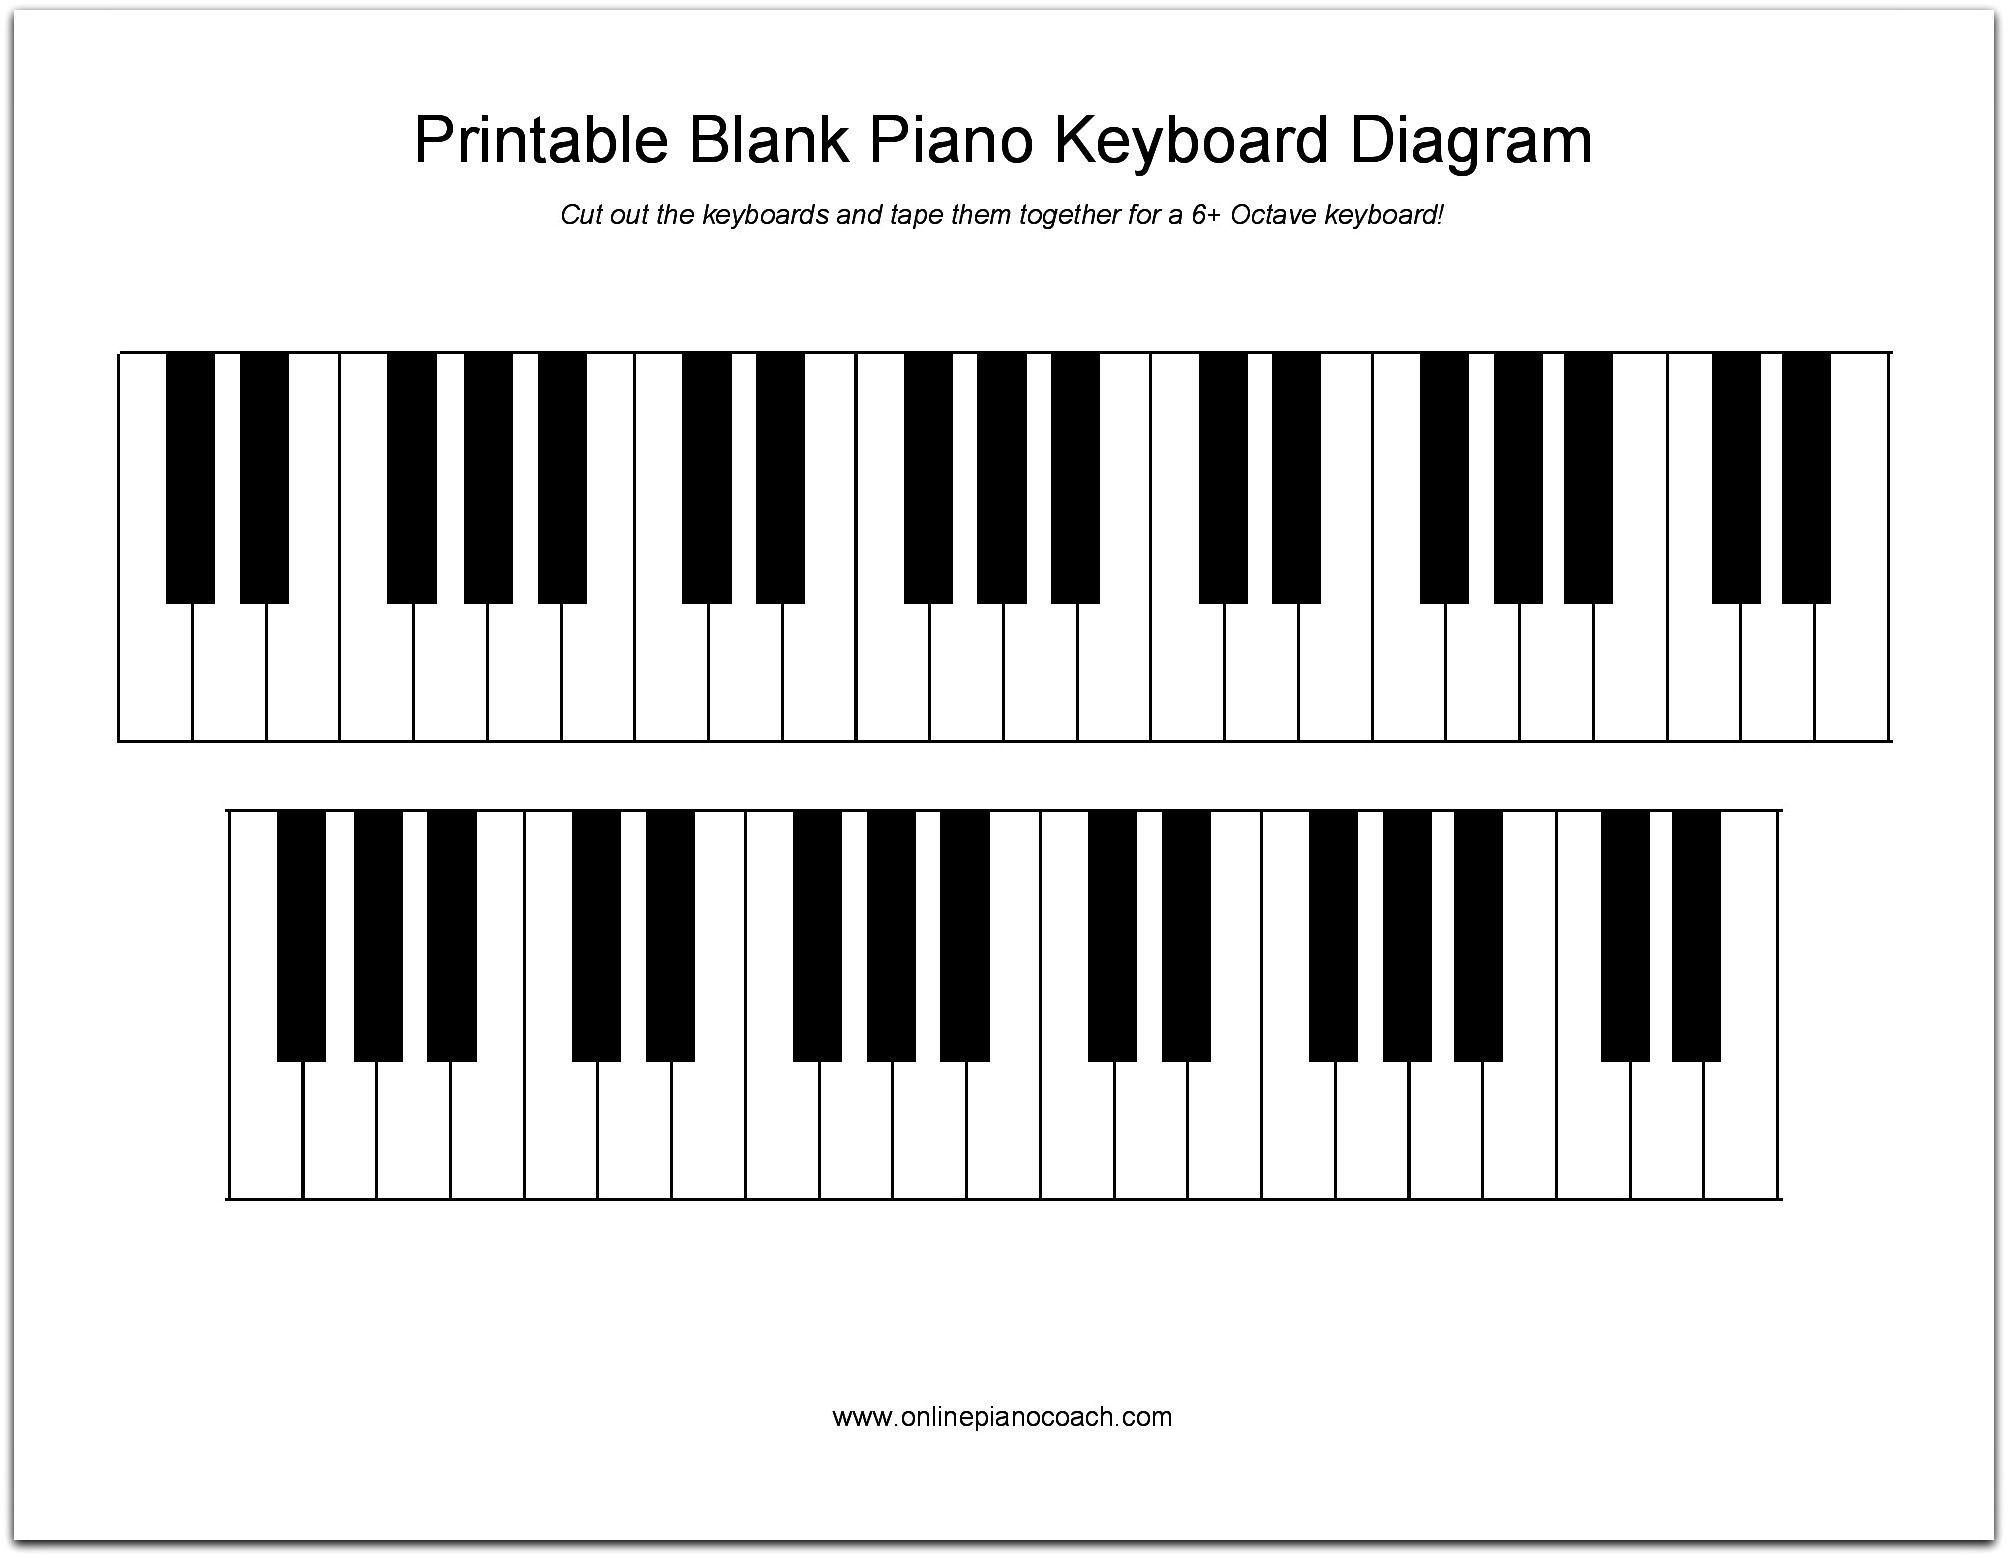 Learn Note Names Quick And Easy With Free, Printable Piano Keyboard - Free Printable Keyboard Stickers